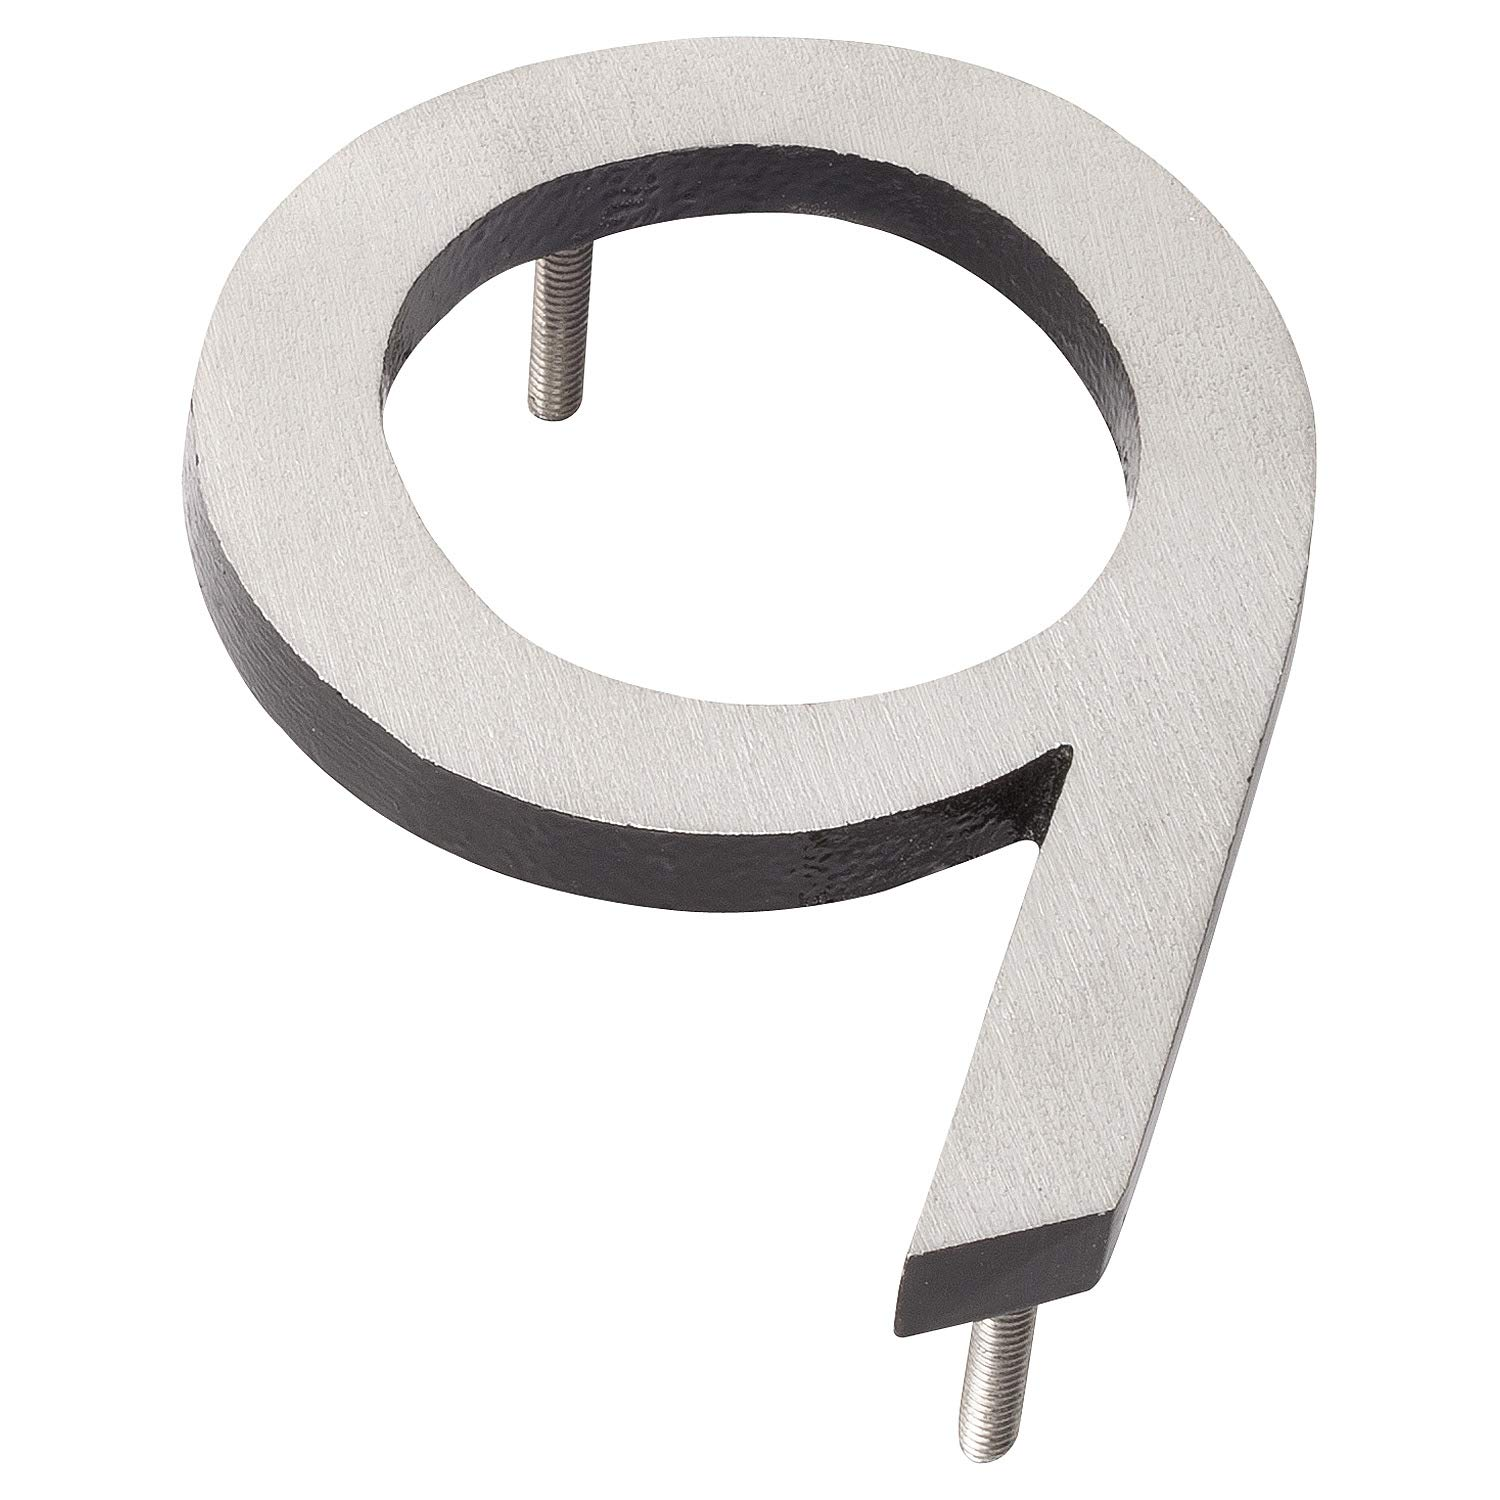 Montague Metal Products MHN-10-9-F-BK2 Floating House Number, 10 inches x 7.25 inches x 0.375 inches Black Two Tone